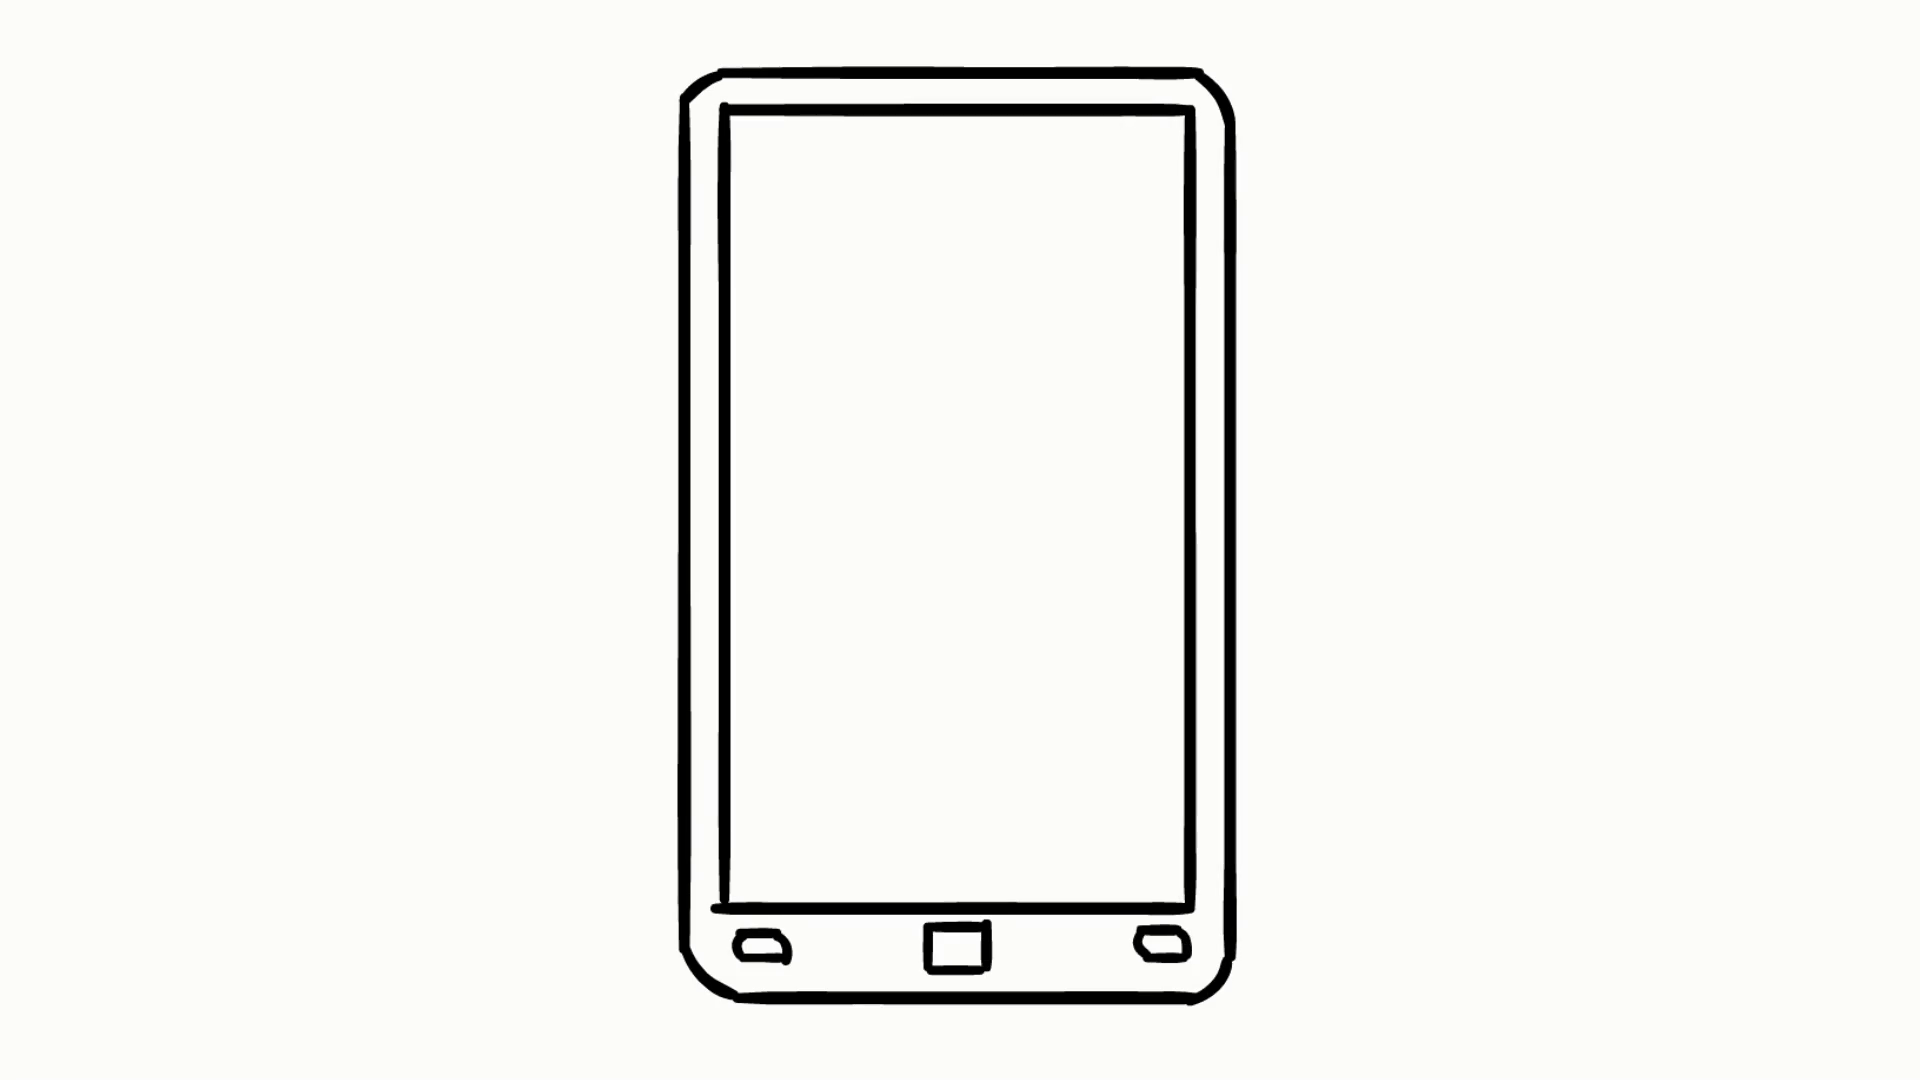 Cell clipart transparent background. Mobile phone tablet hand